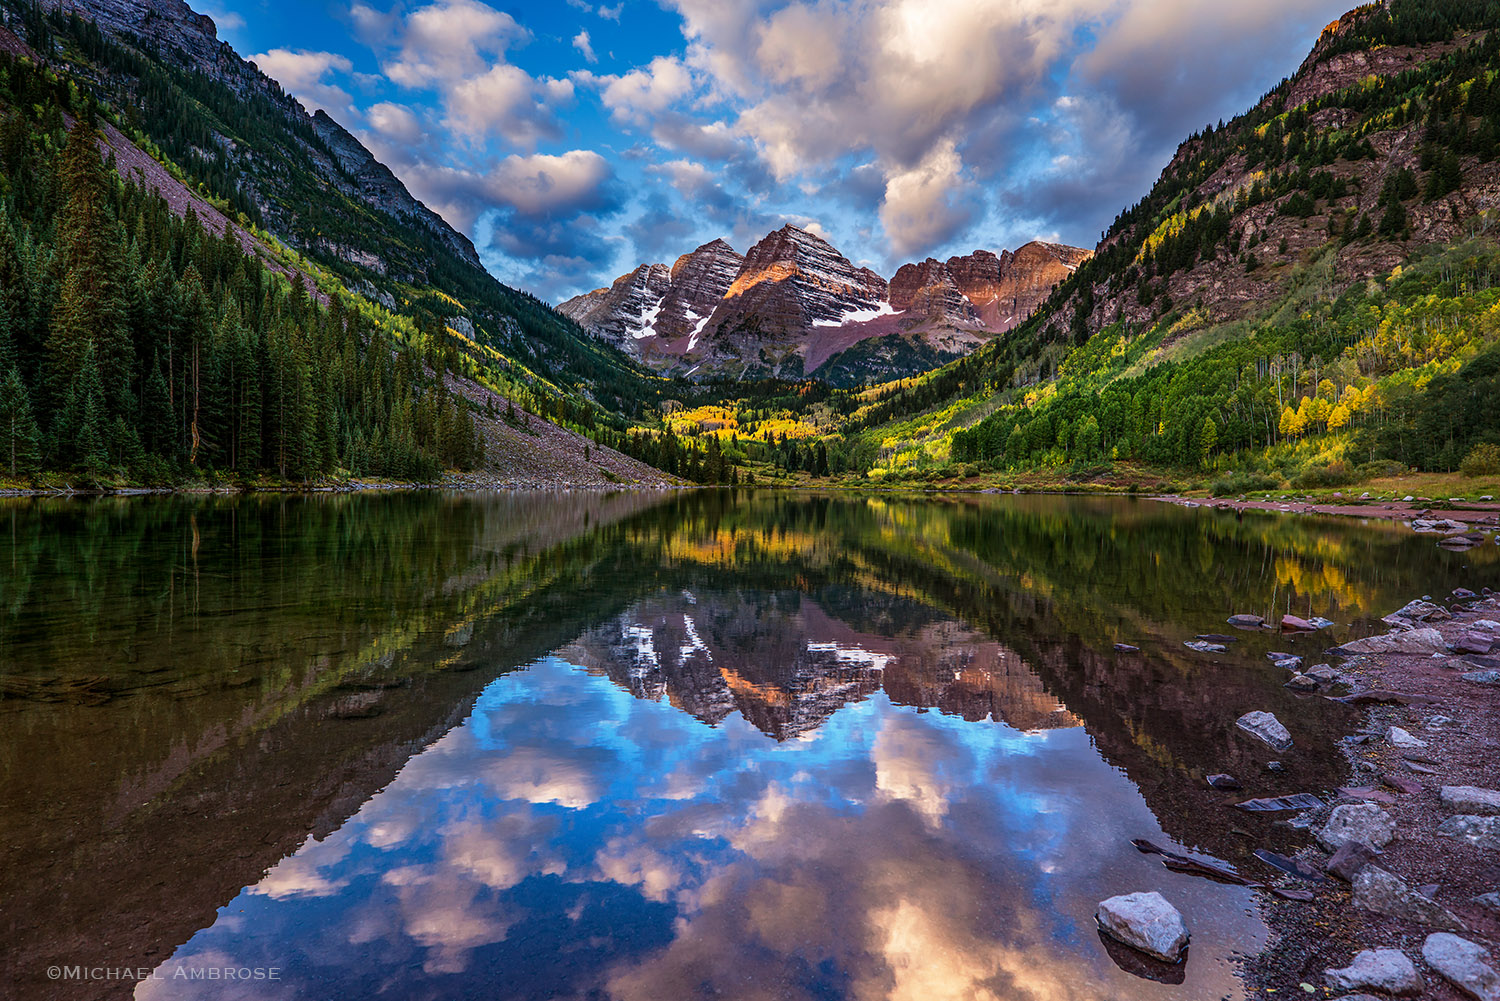 The Maroon Bells Mountains in autumn with a strong lake reflection, near Aspen, CO.